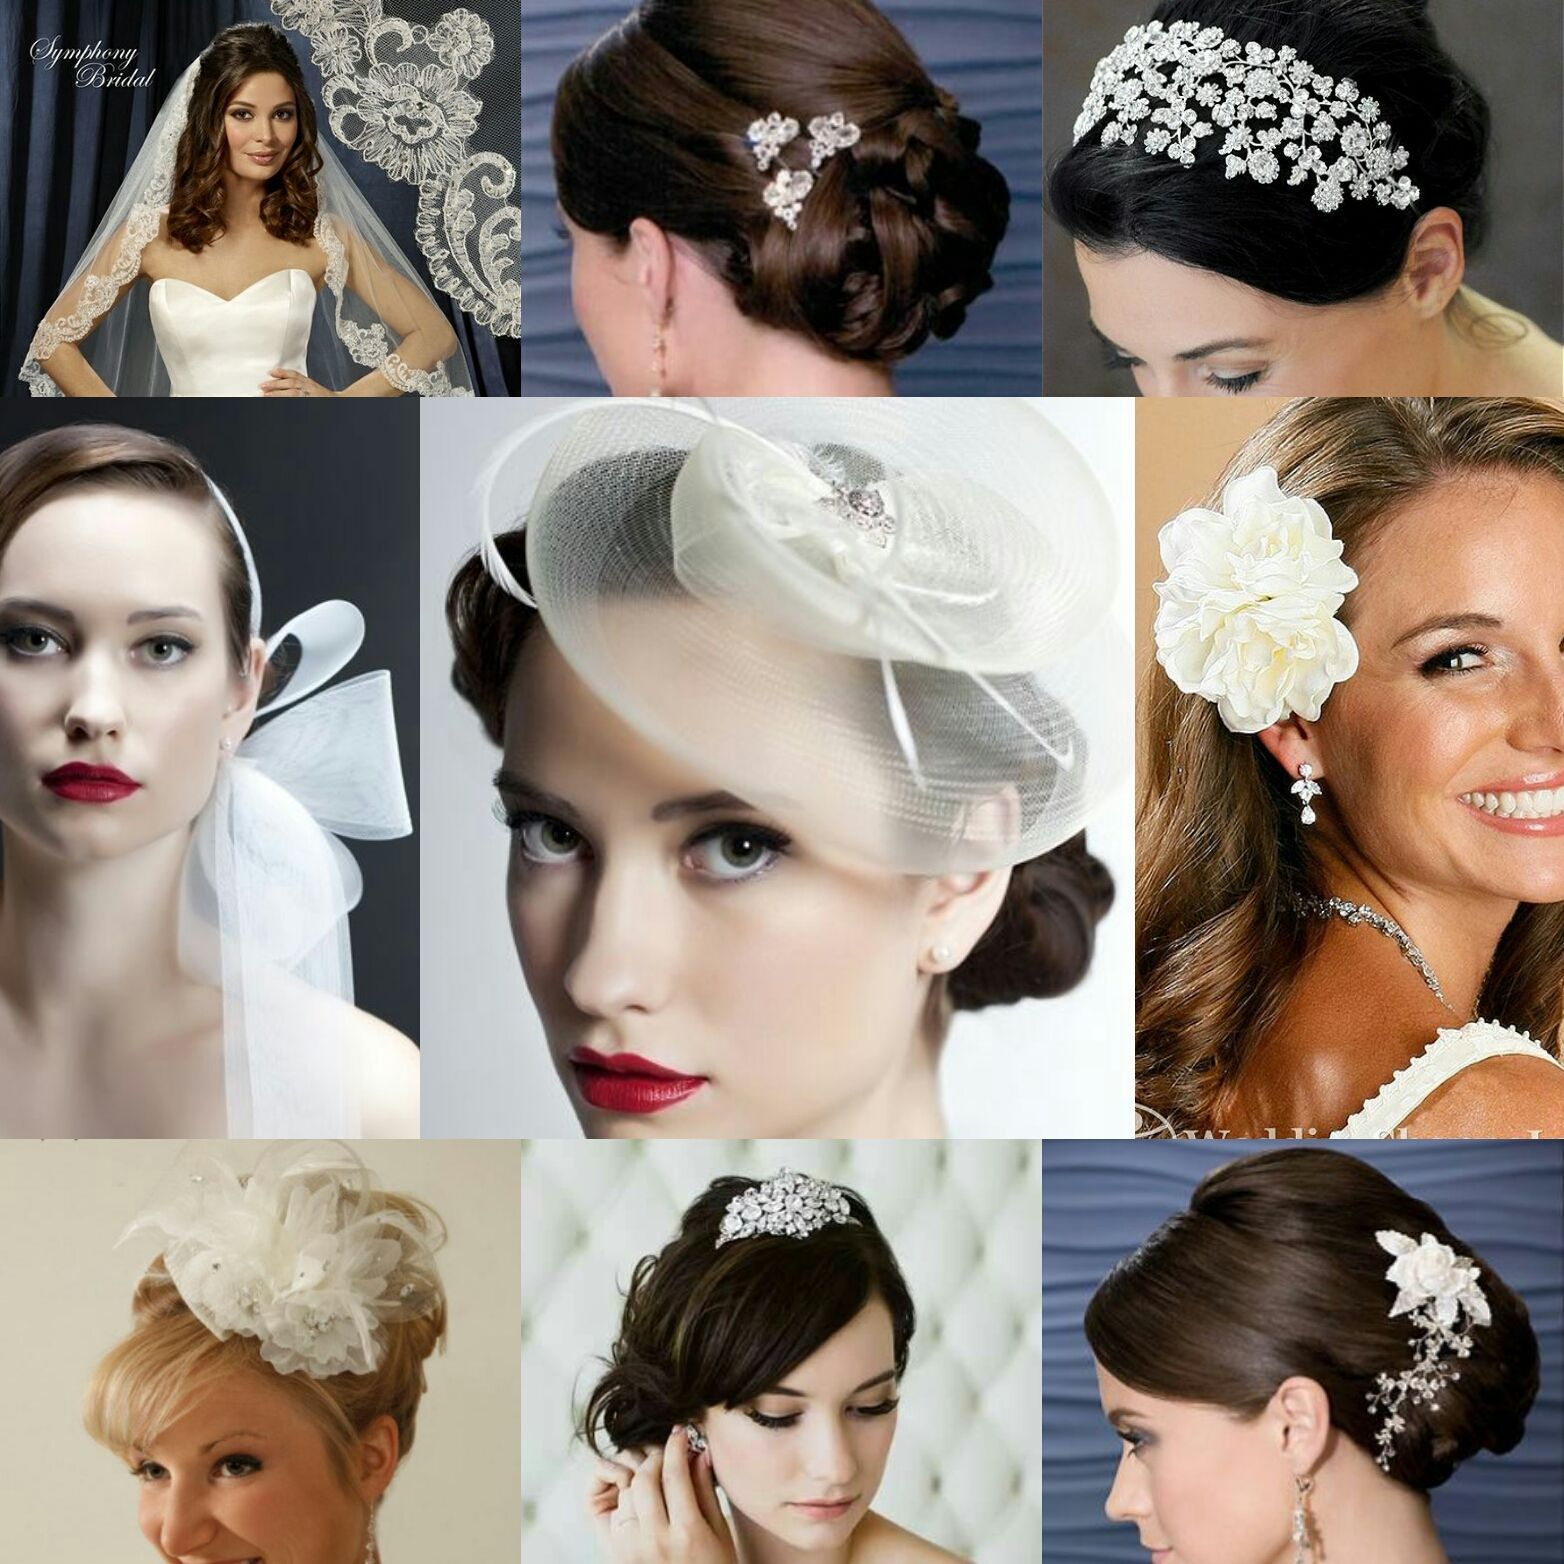 Feather coal hair accessories emily kent wedding hair bridal musings - Makeup